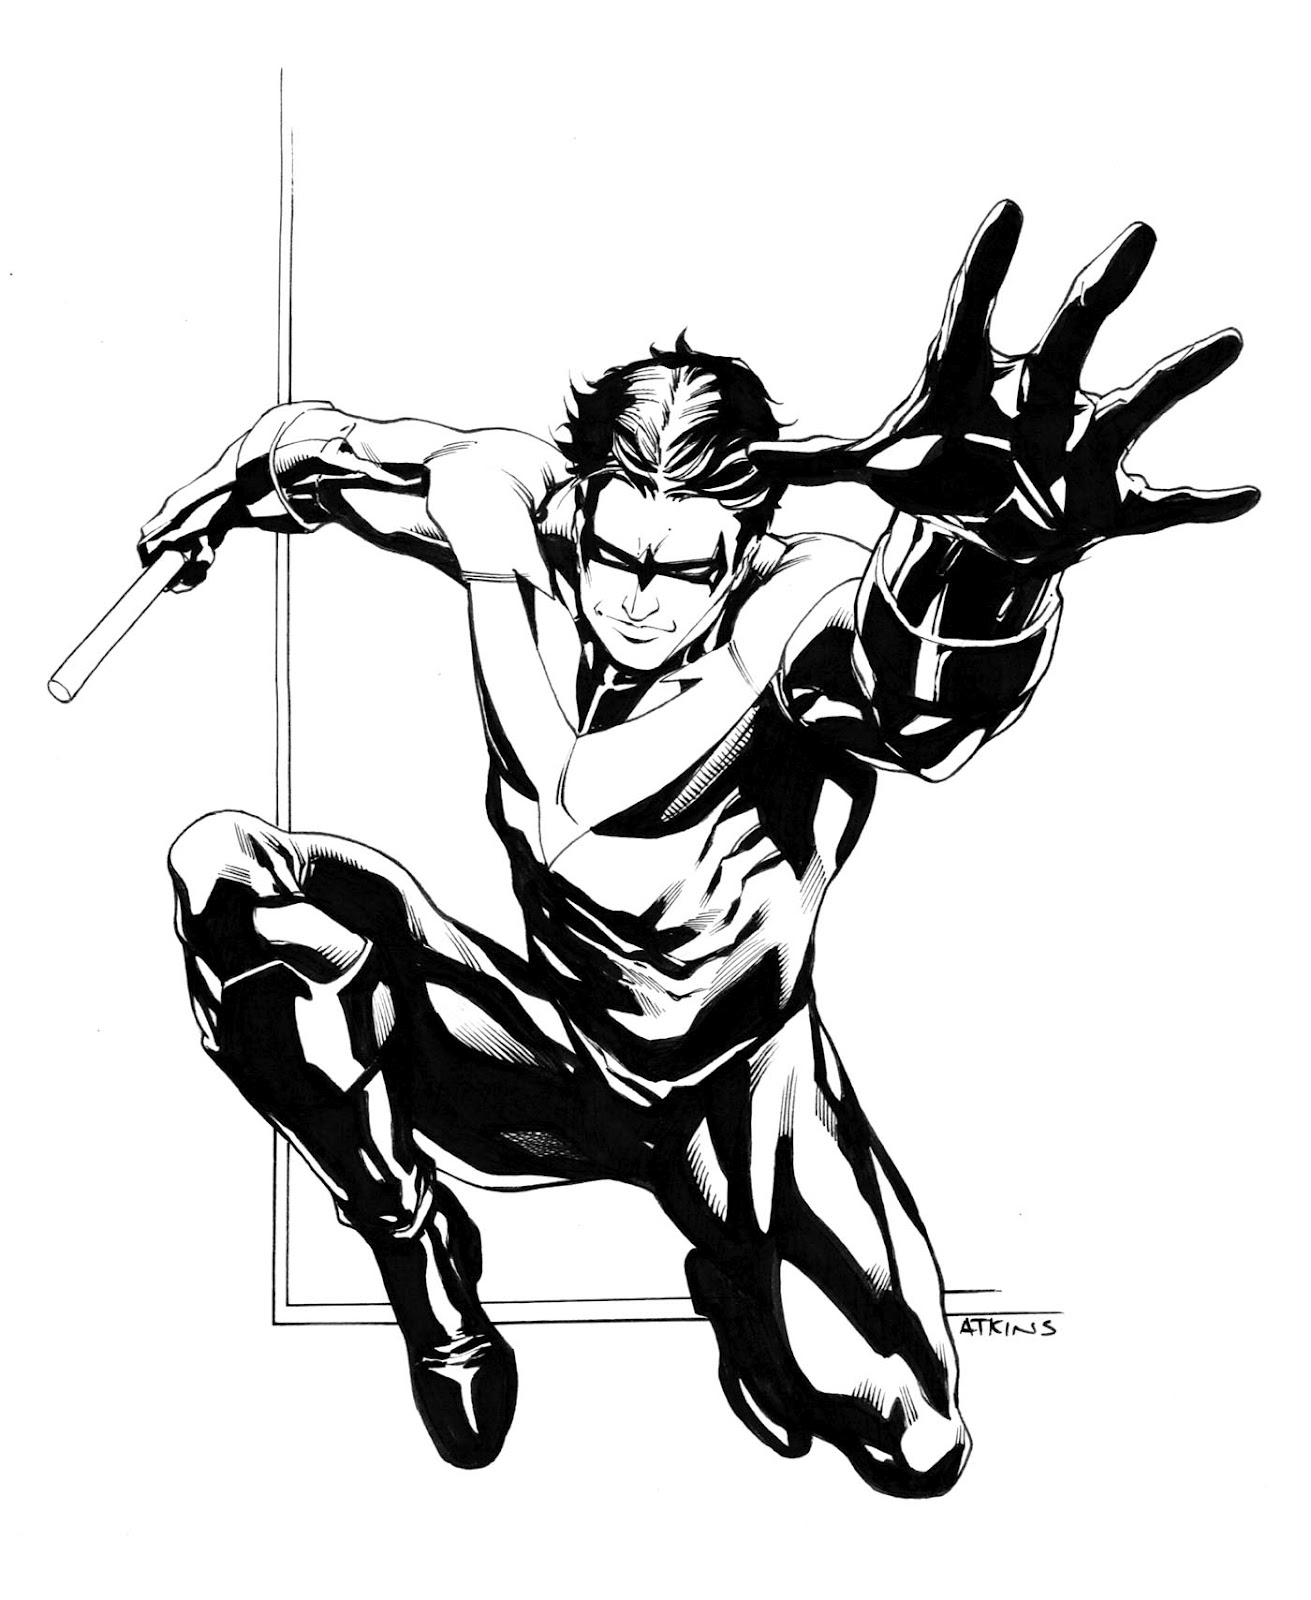 free nightwing coloring pages - Nightwing Coloring Pages